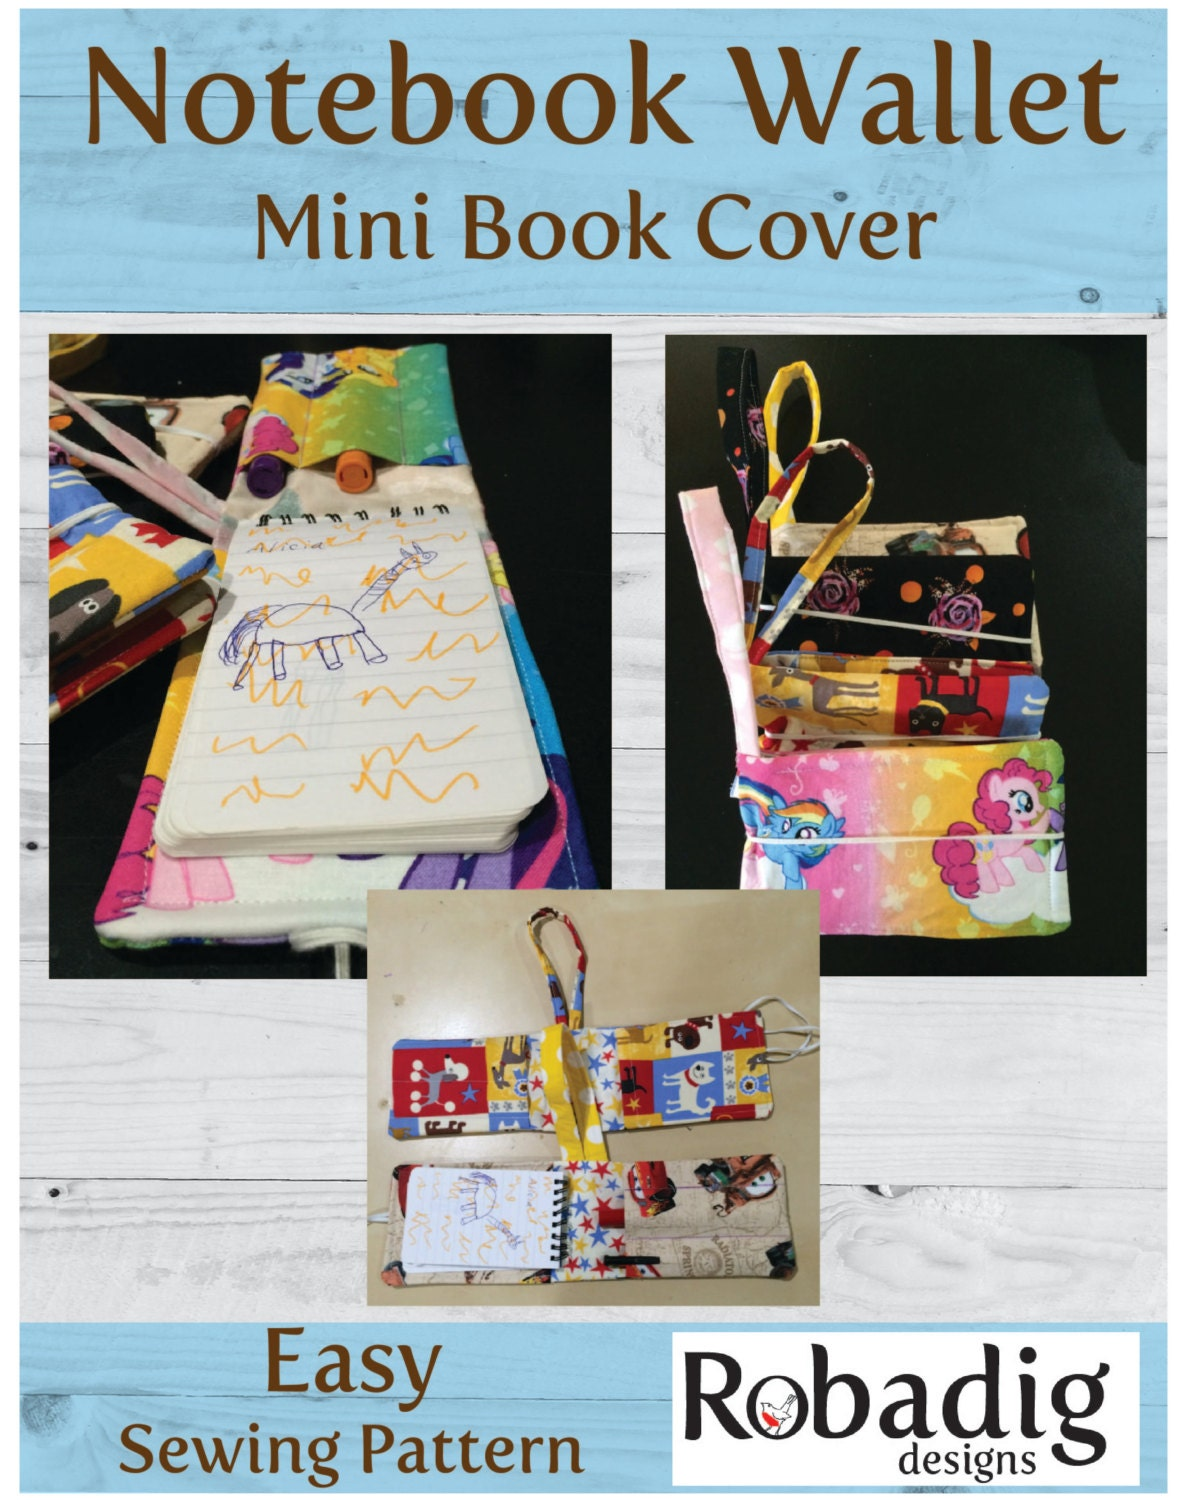 Book Cover Sewing Pattern : Notebook wallet mini book cover sewing pattern art case